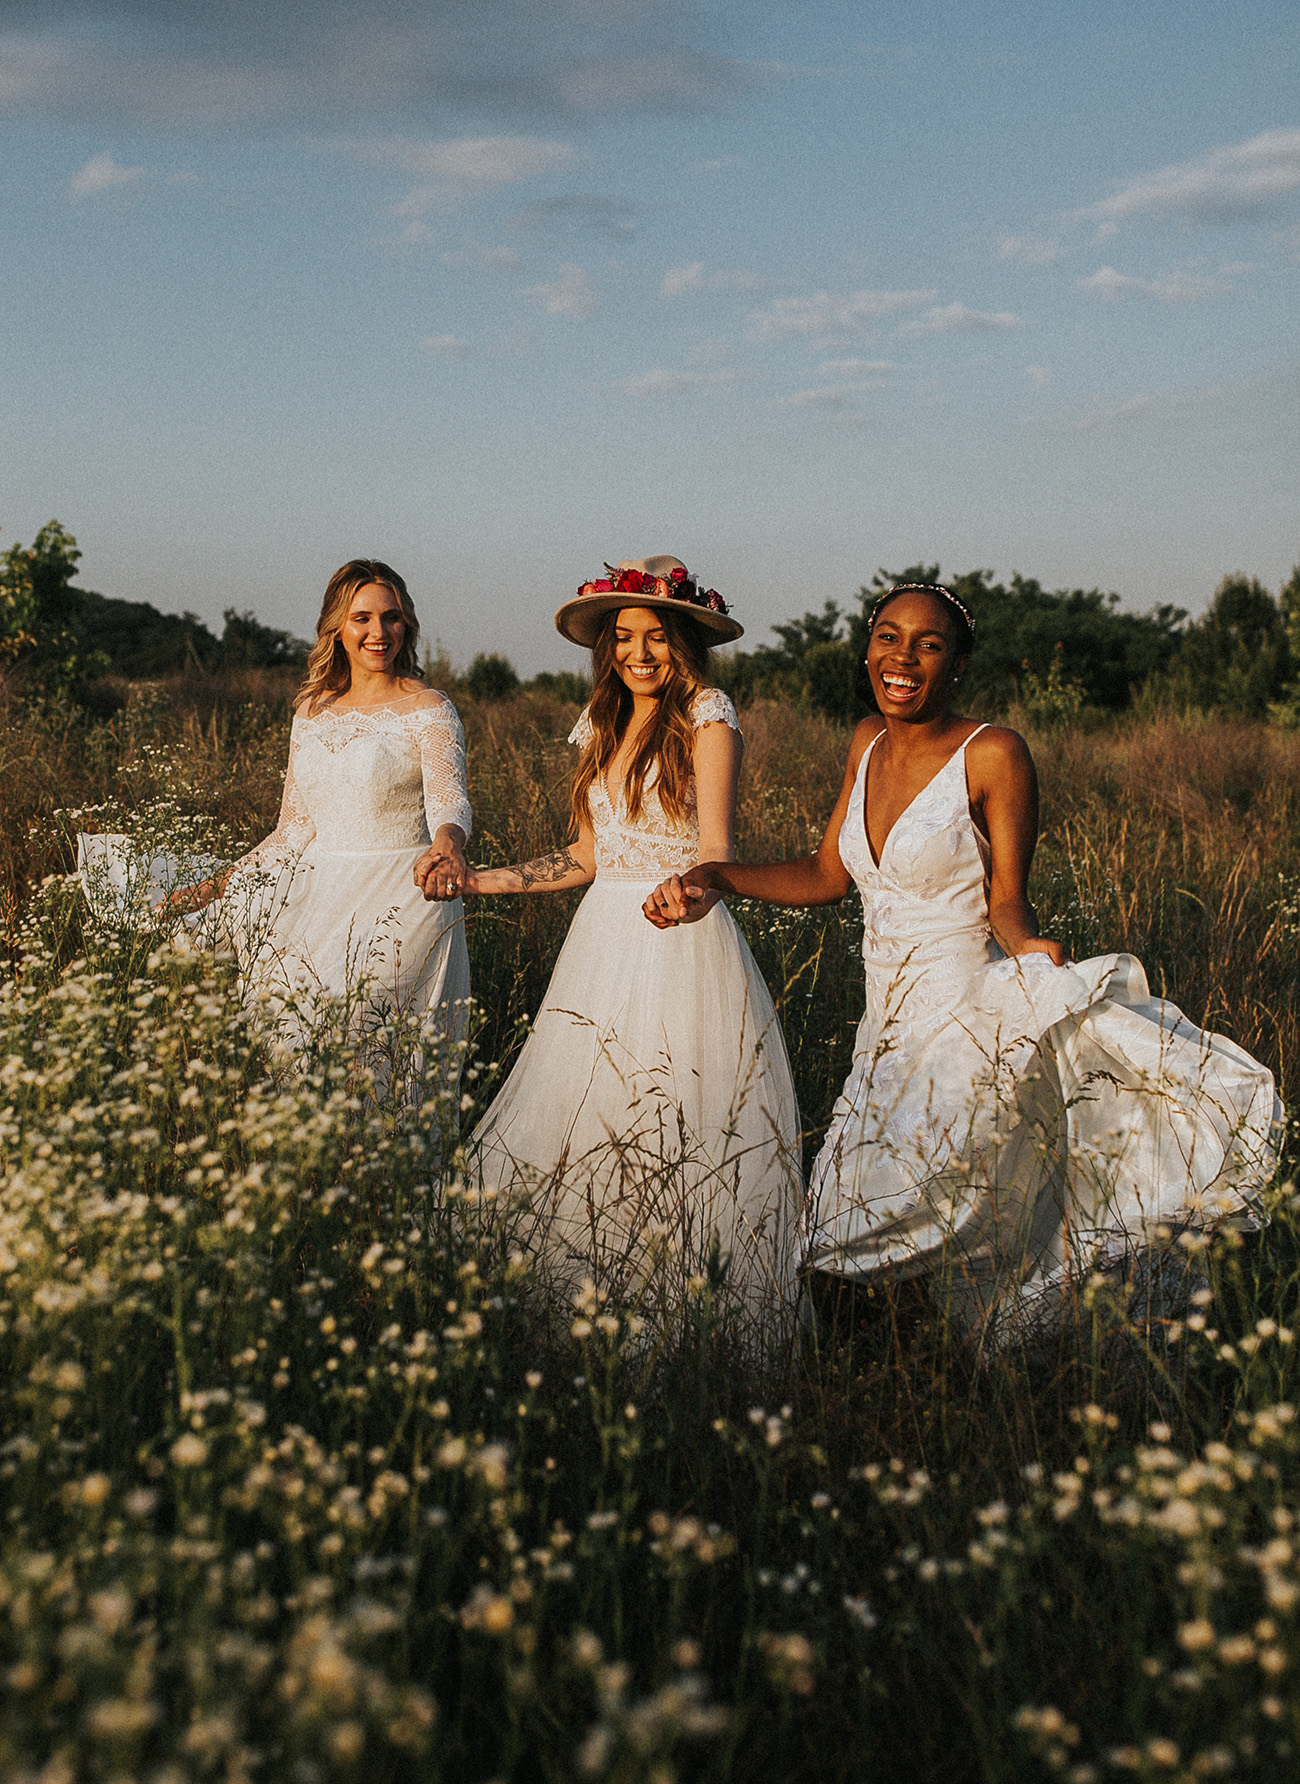 Meet Vow'd! A Fun New Bridal Brand for Fiscally-Sharp Brides